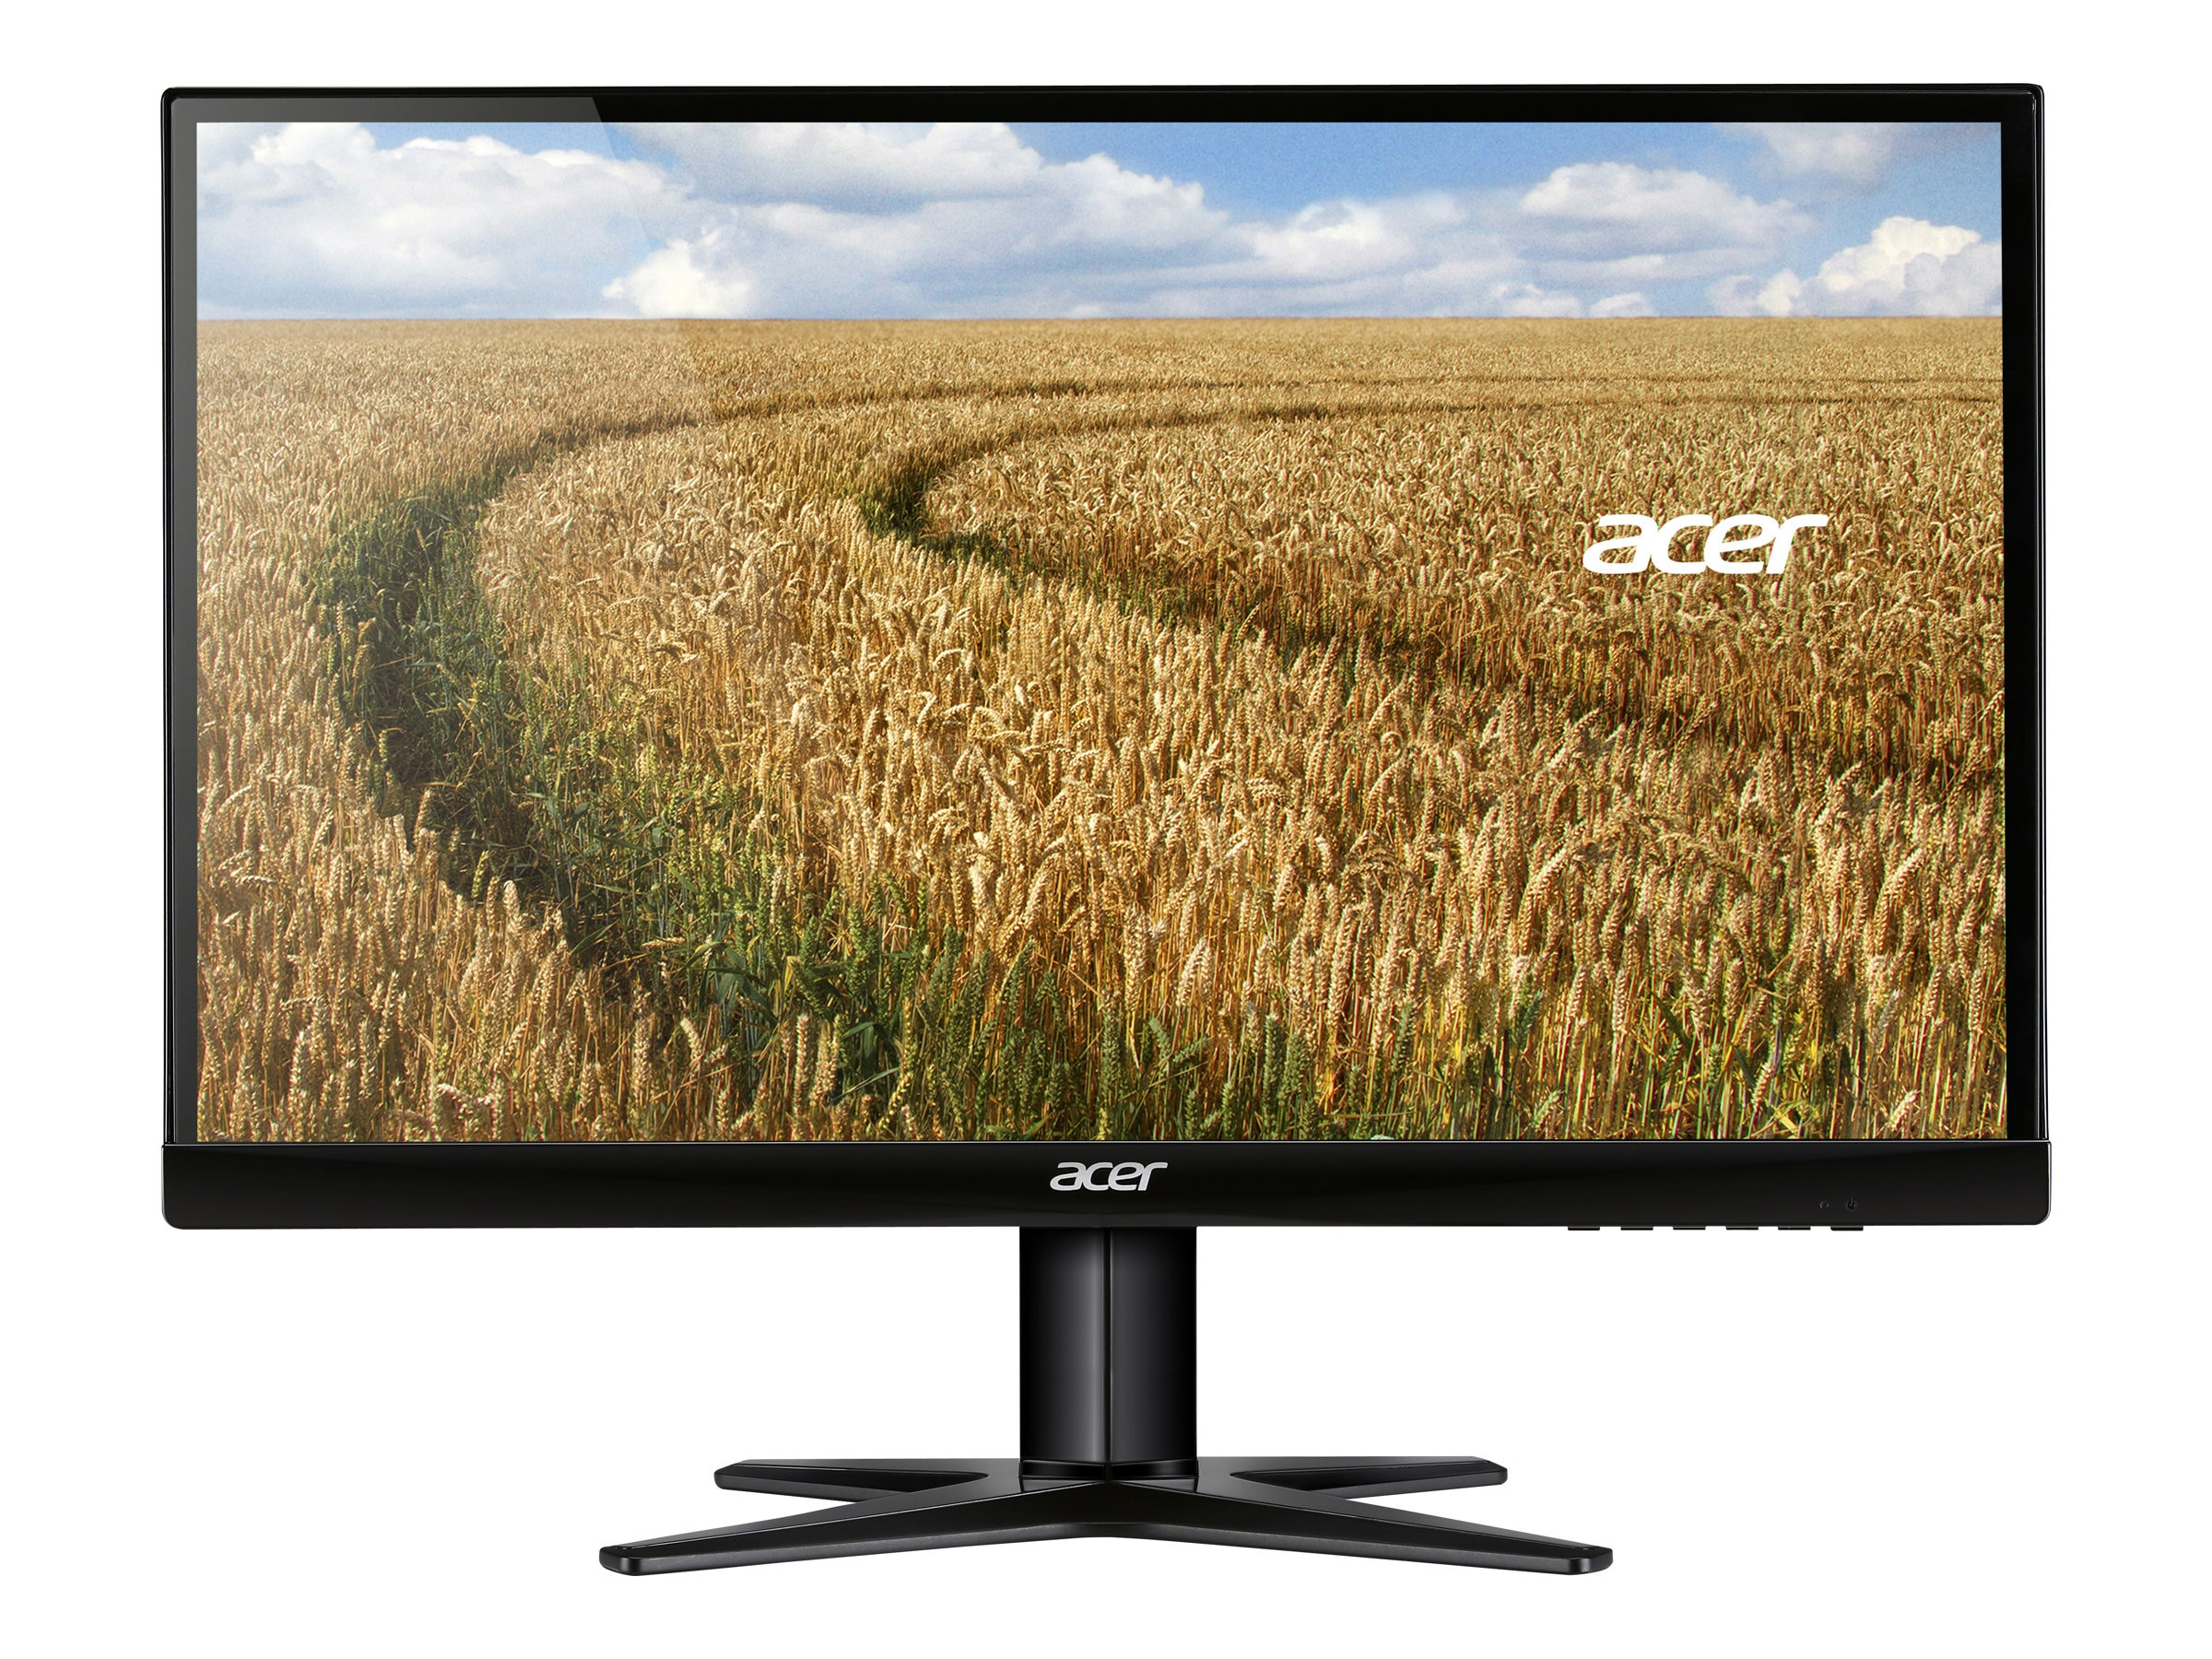 Acer 23.8 G247HYL bmidx Full HD LED-LCD Monitor, Black, UM.QG7AA.002